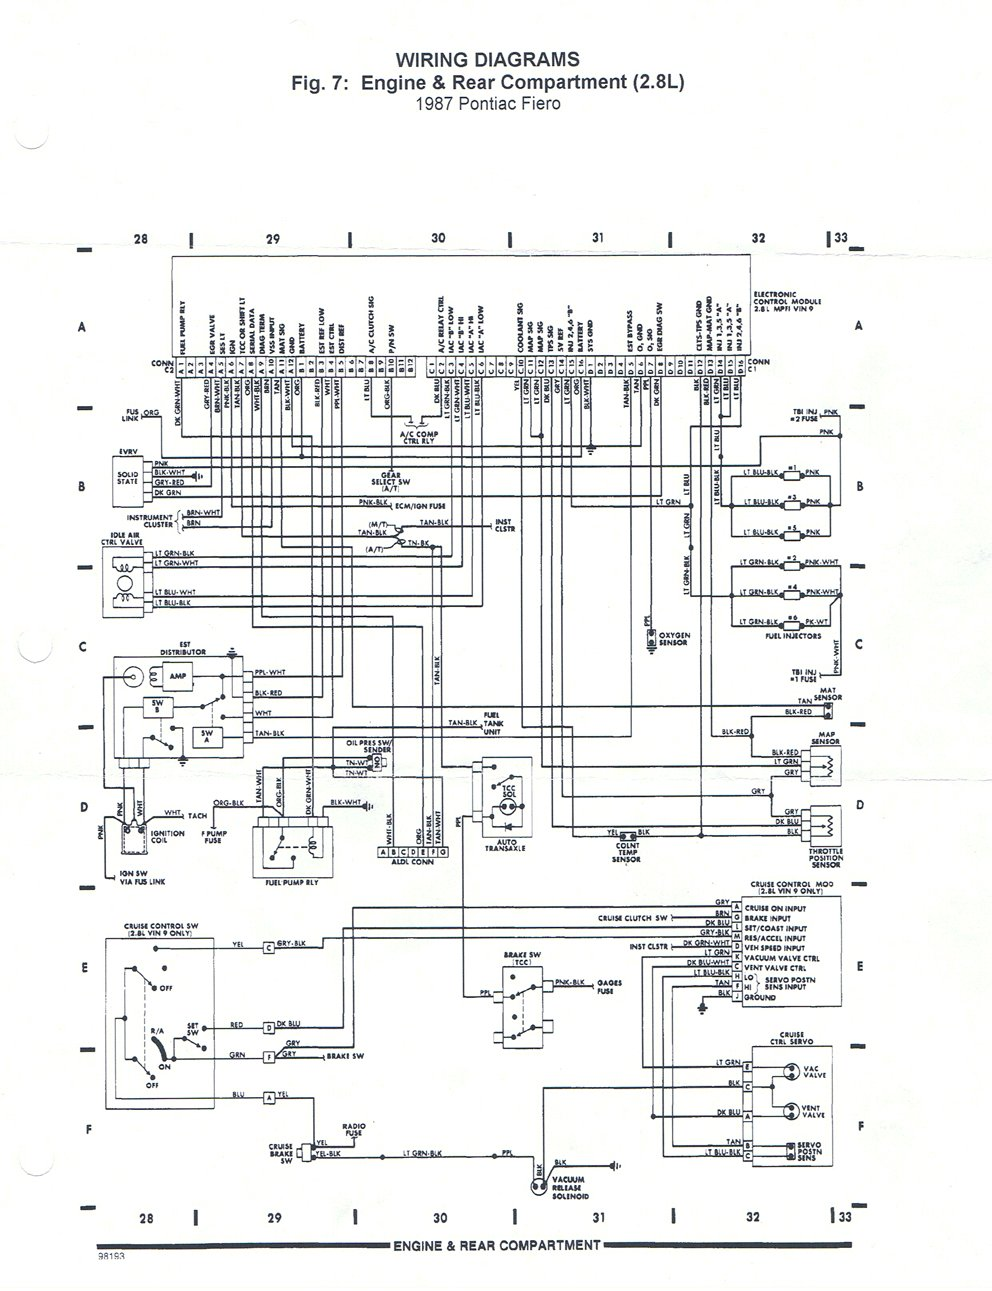 Oldsmobile vin location wiring diagram and fuse box diagram images - Pontiac Fiero Wiring Diagram Wiring Diagrams 88 Pontiac Fiero Wiring Diagram Digital